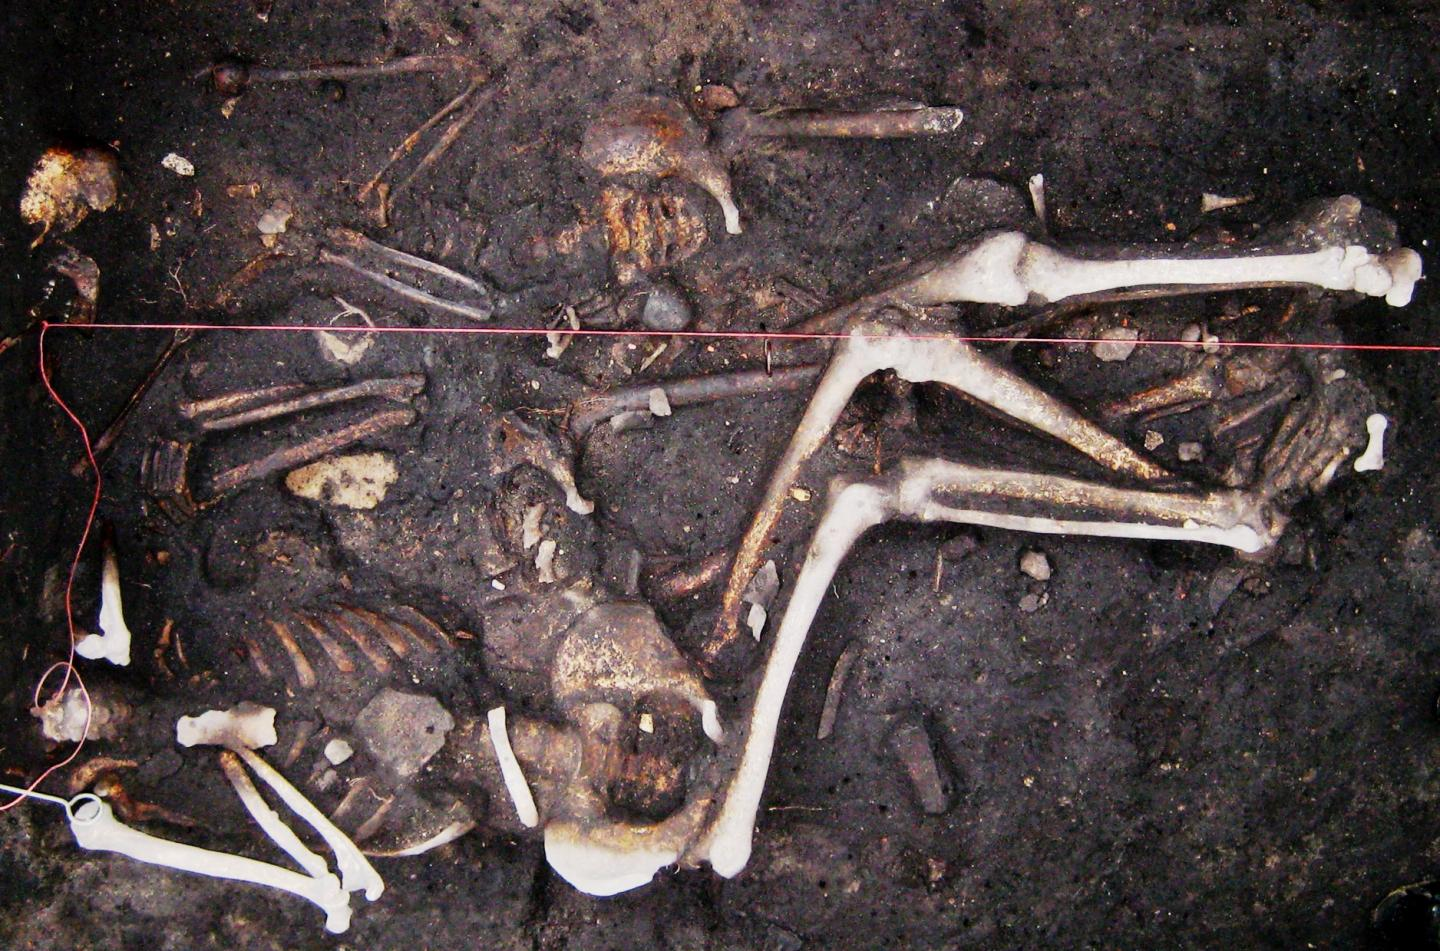 Plague May Have Persisted in Europe During 300-Year Period, Including